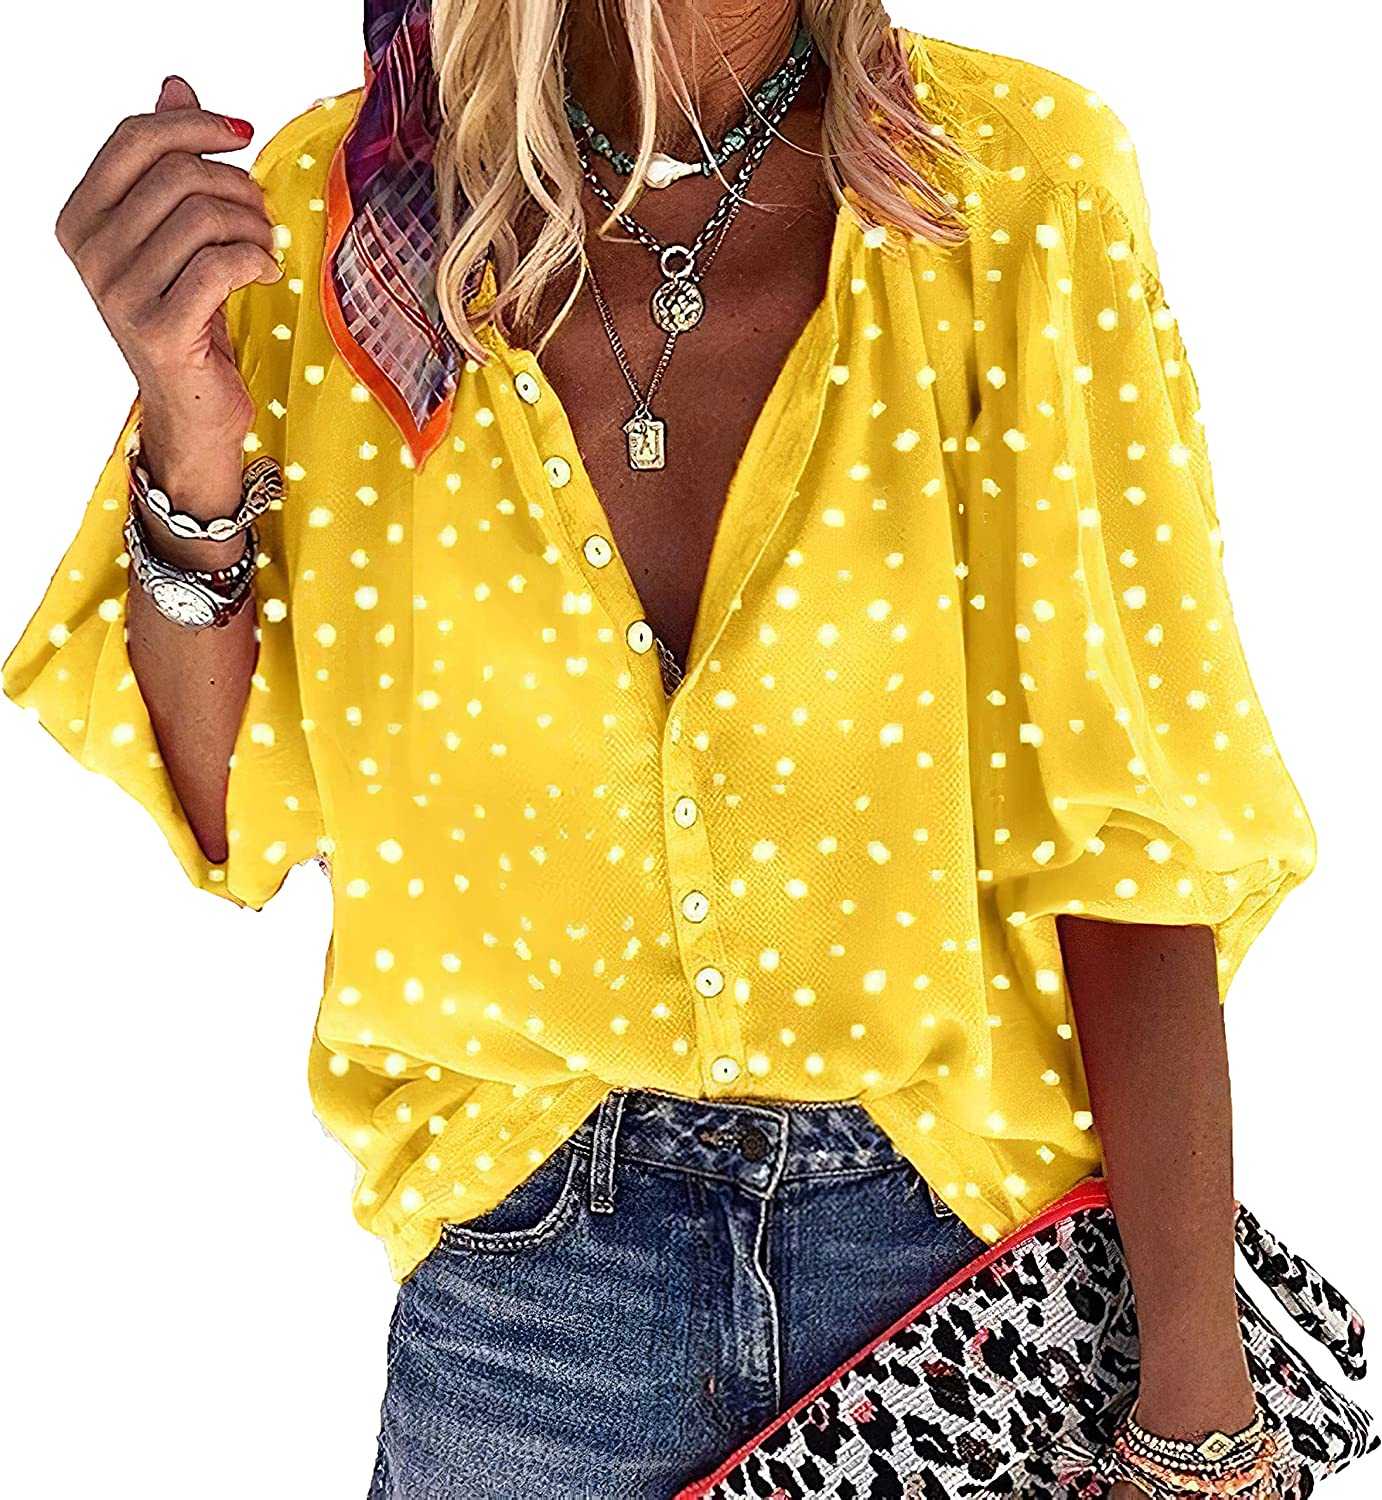 Akivide Women's Plus Size Casual Loose V Neck Shirt Tops Blouses Polka Dots Button Down Shirts